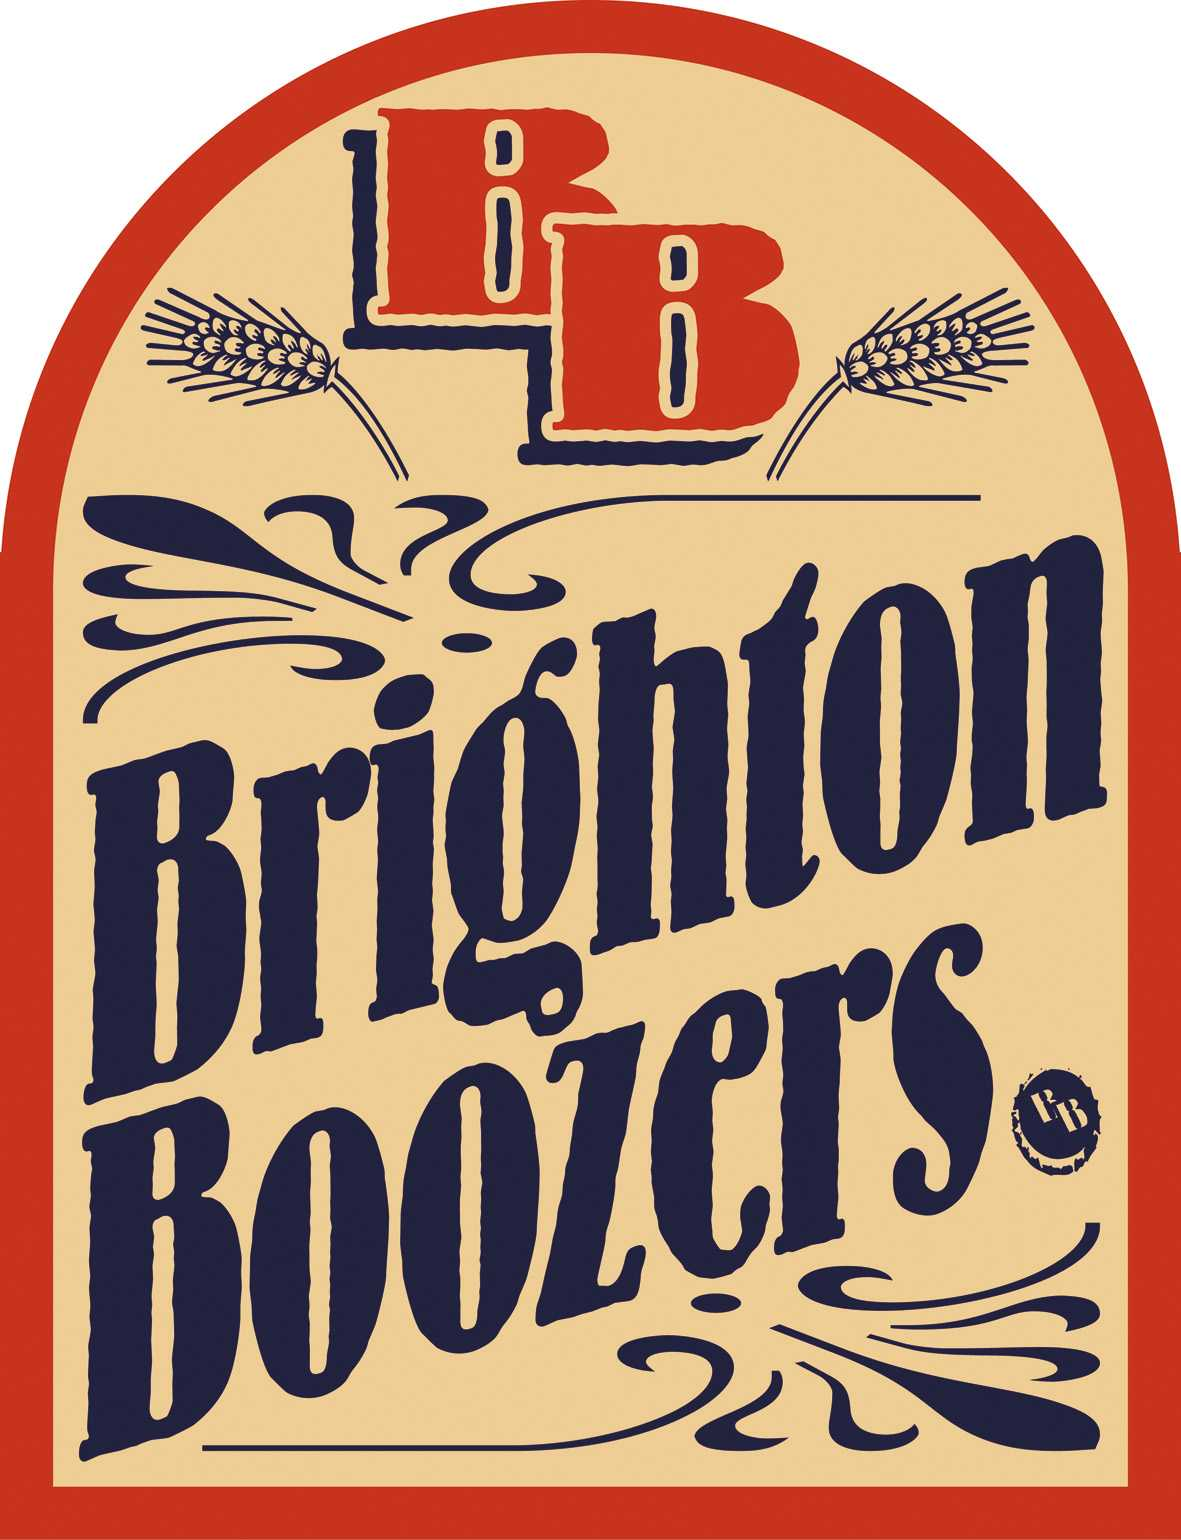 about rose collis brighton boozers logo